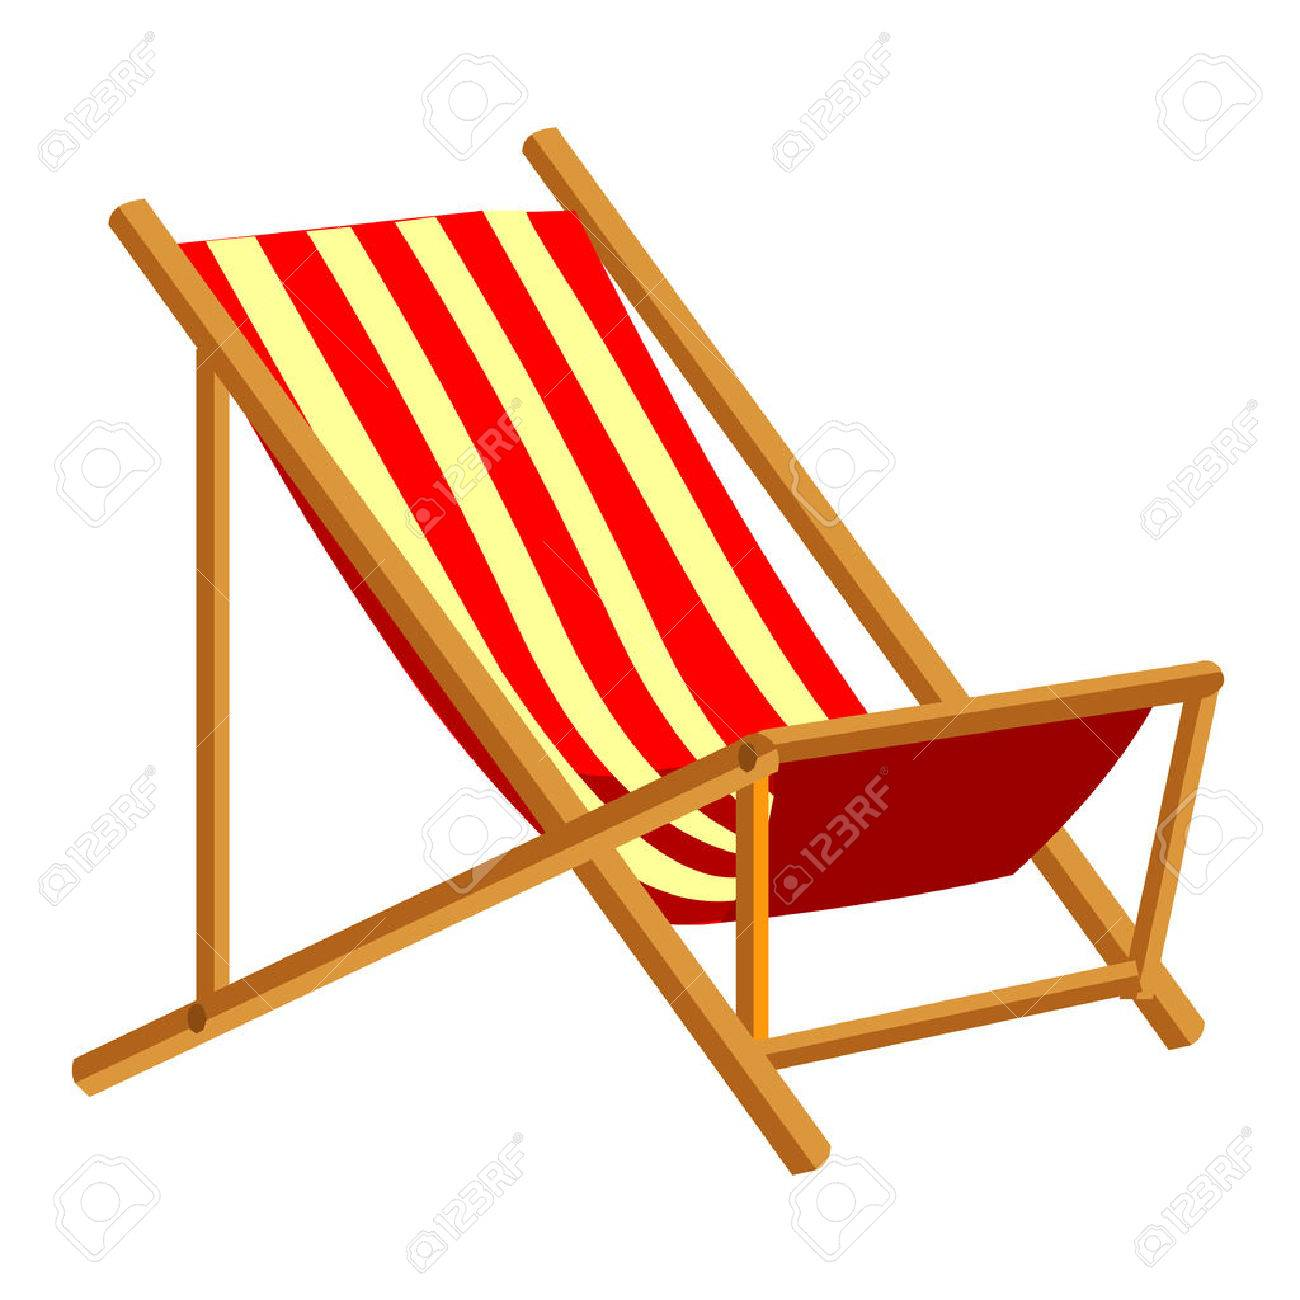 Beach Chair Isolated Illustration On White Background Stock Vector    24502510